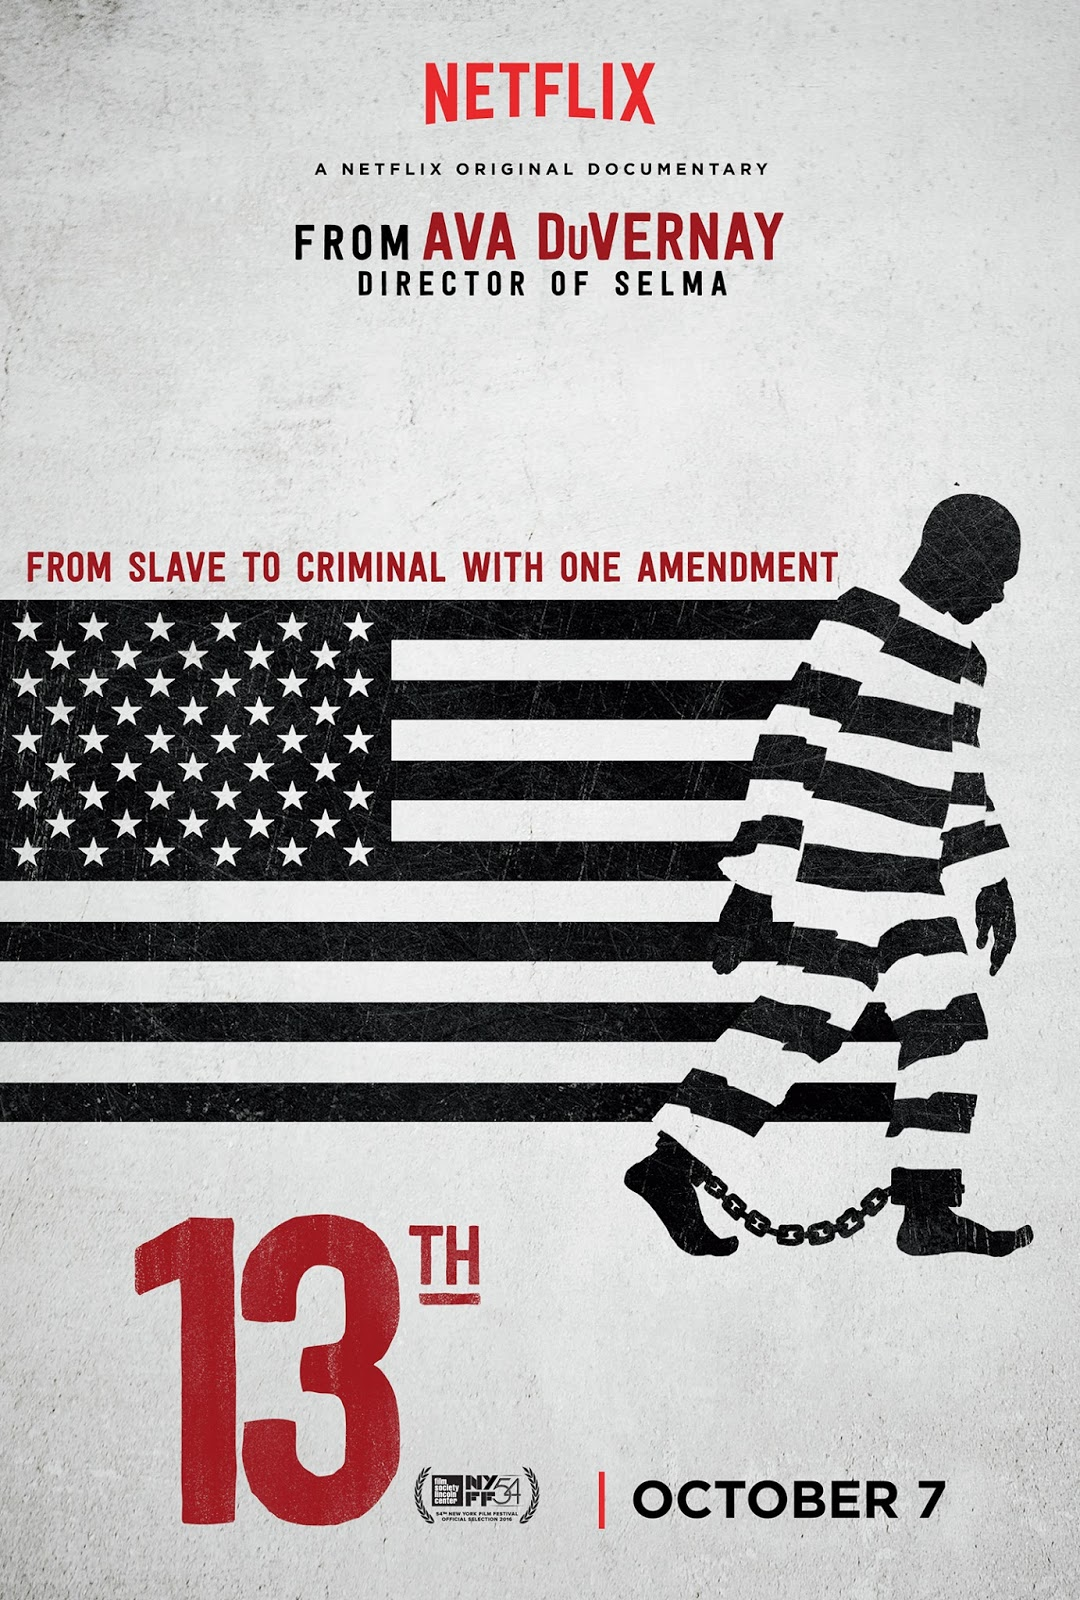 poster for 13th by ava duvernay now streaming on netflix